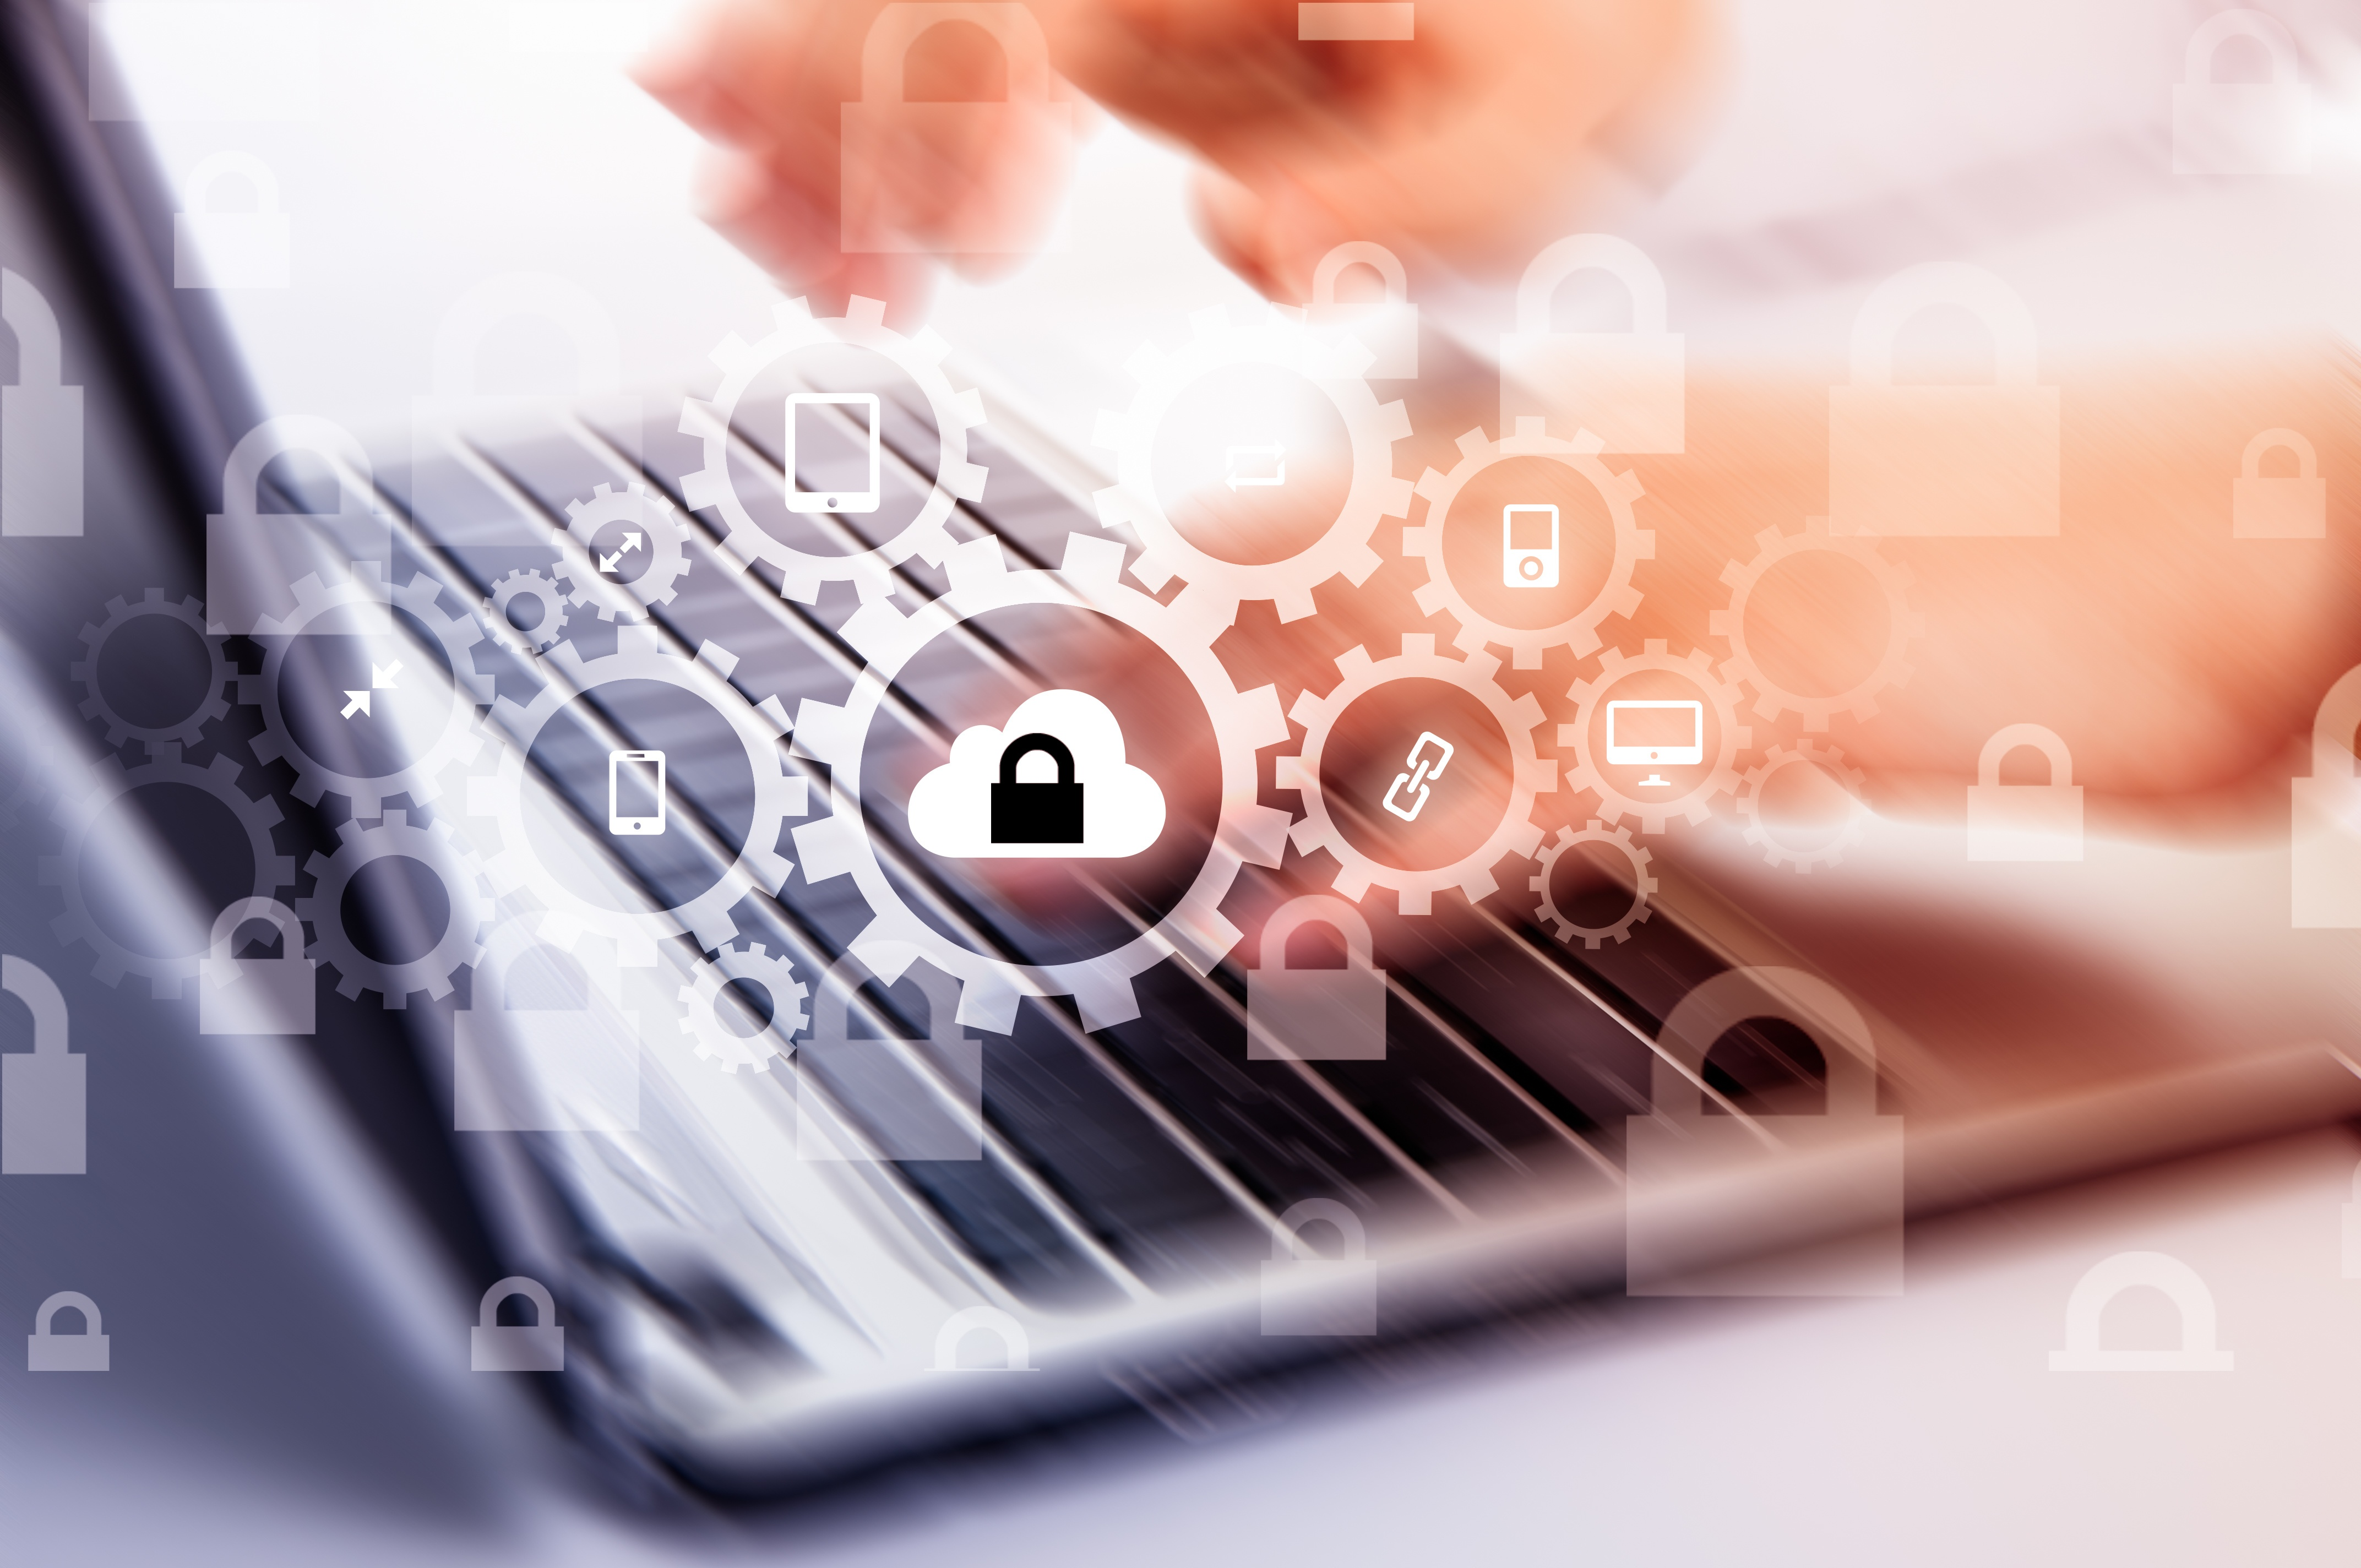 Security Stock Image Computer